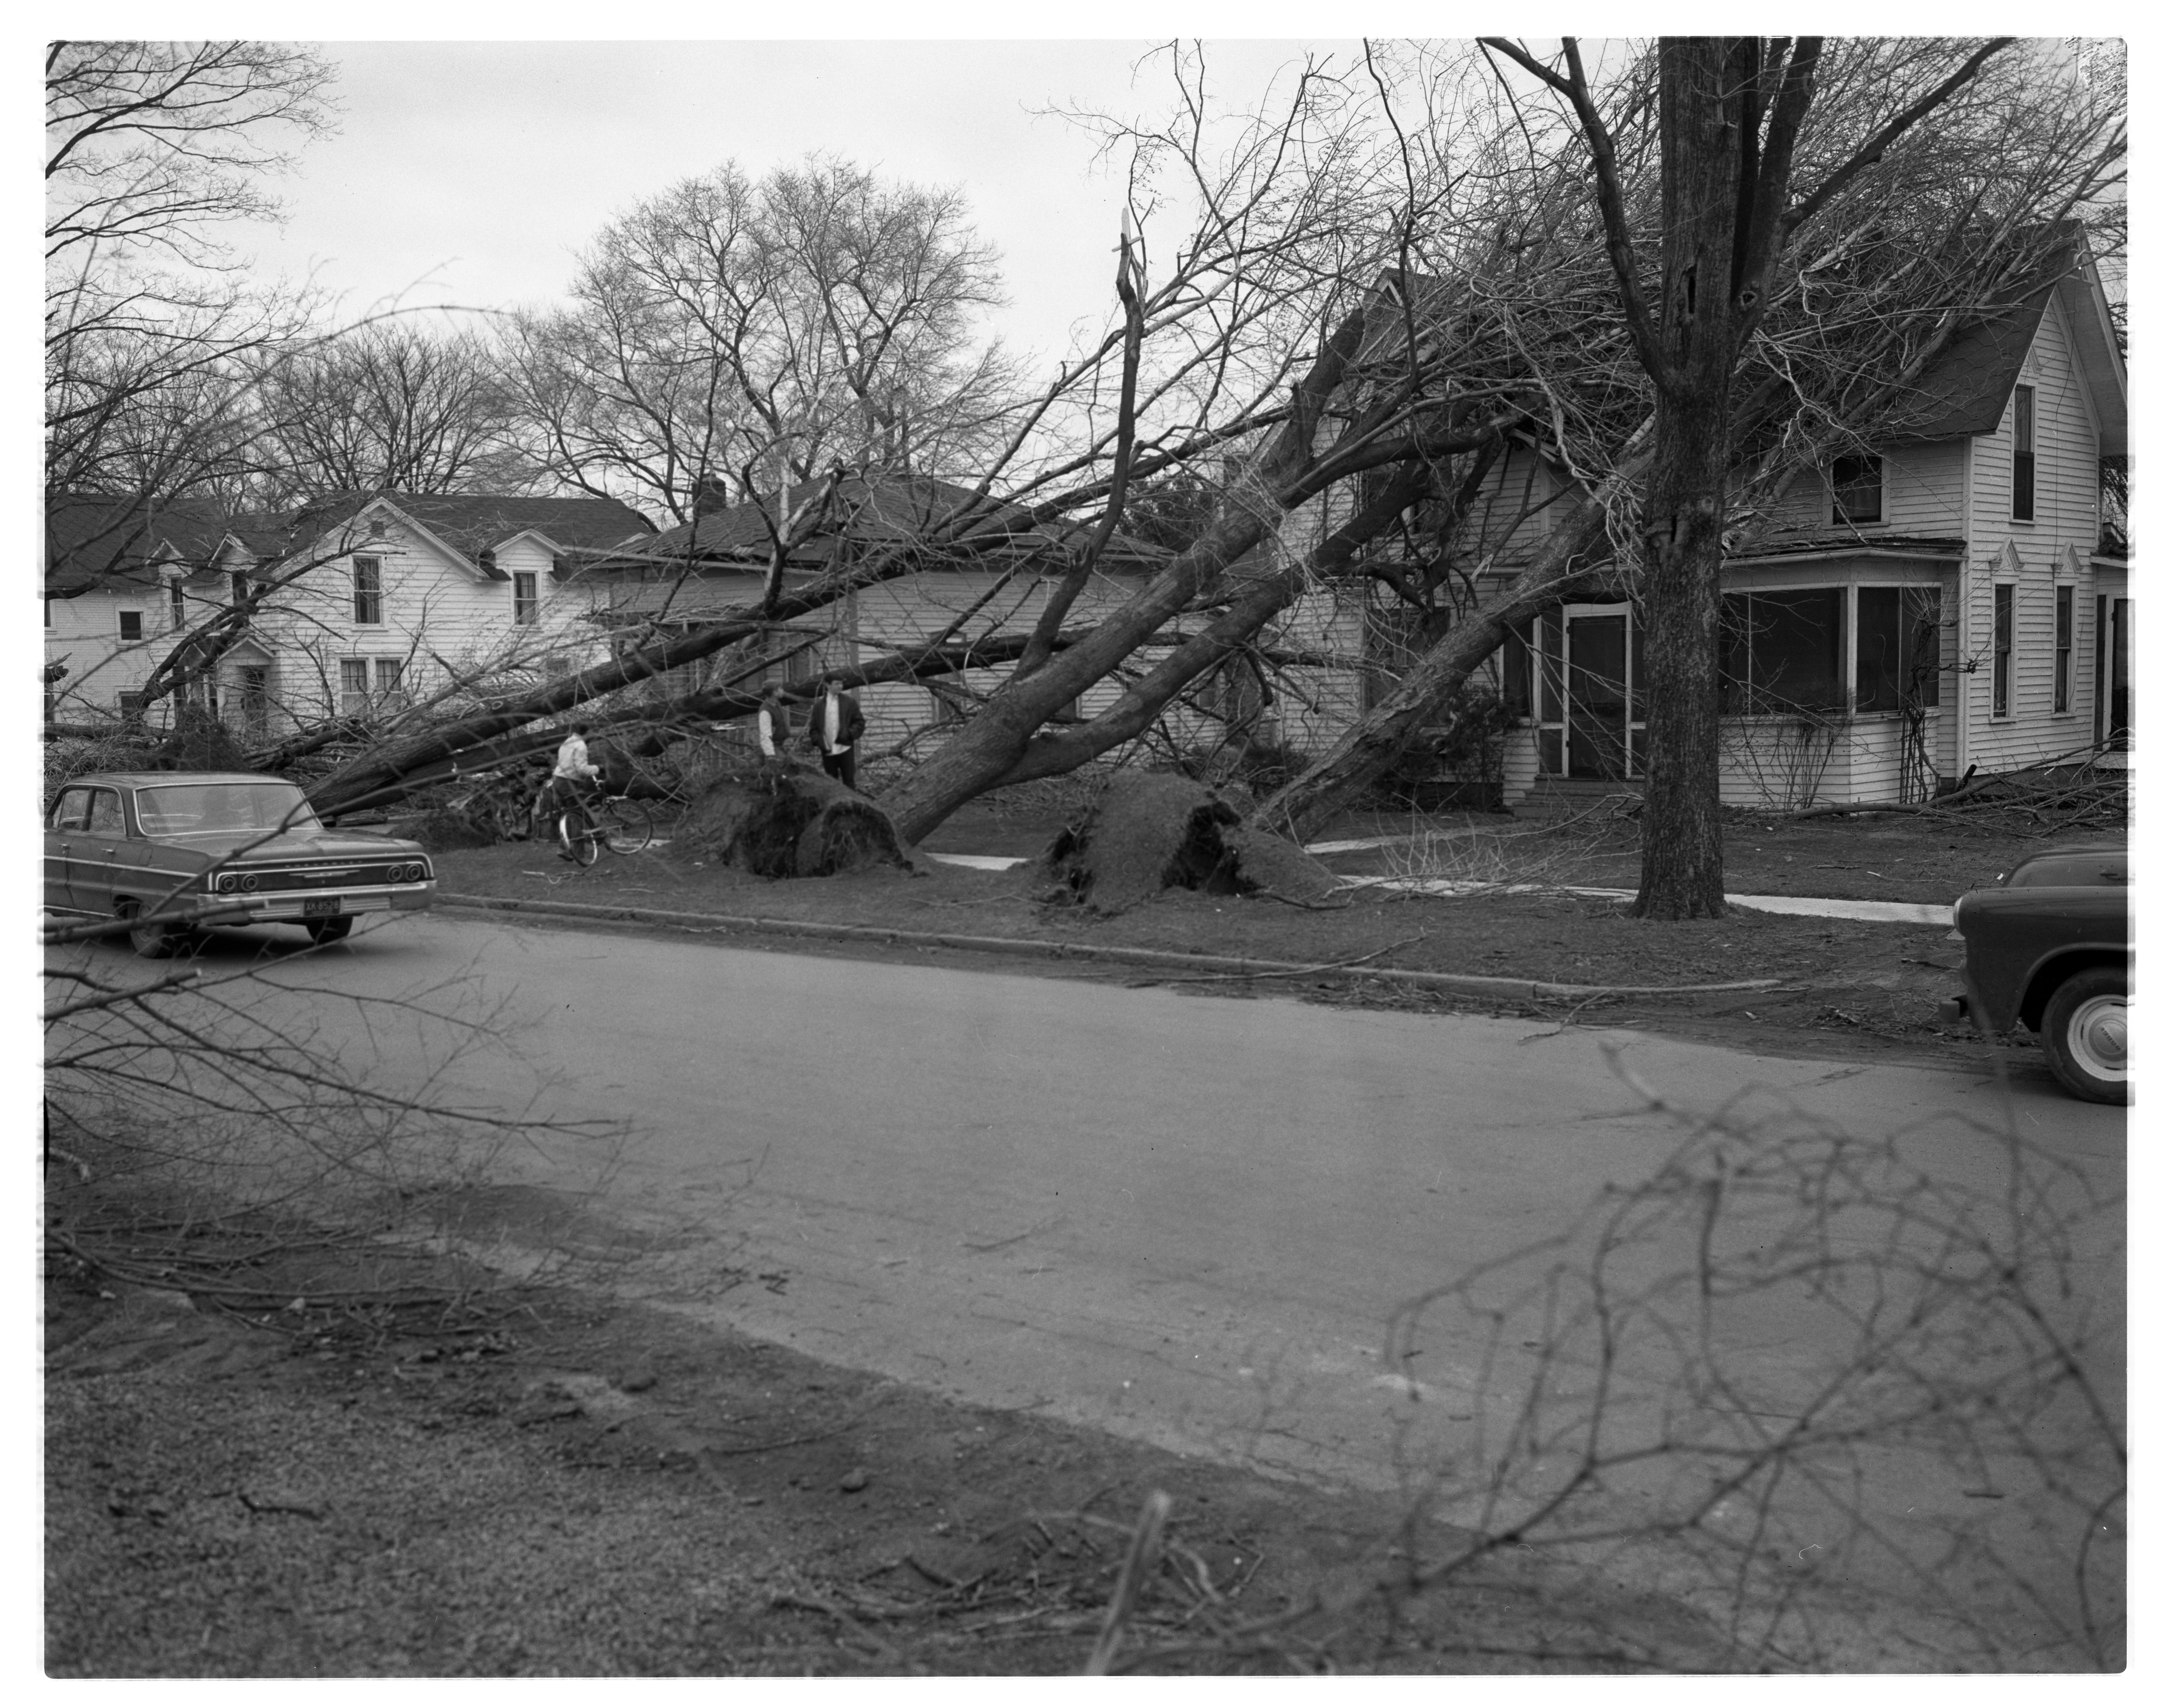 Tornado Tossed Trees On Homes in Milan, April 1965 image